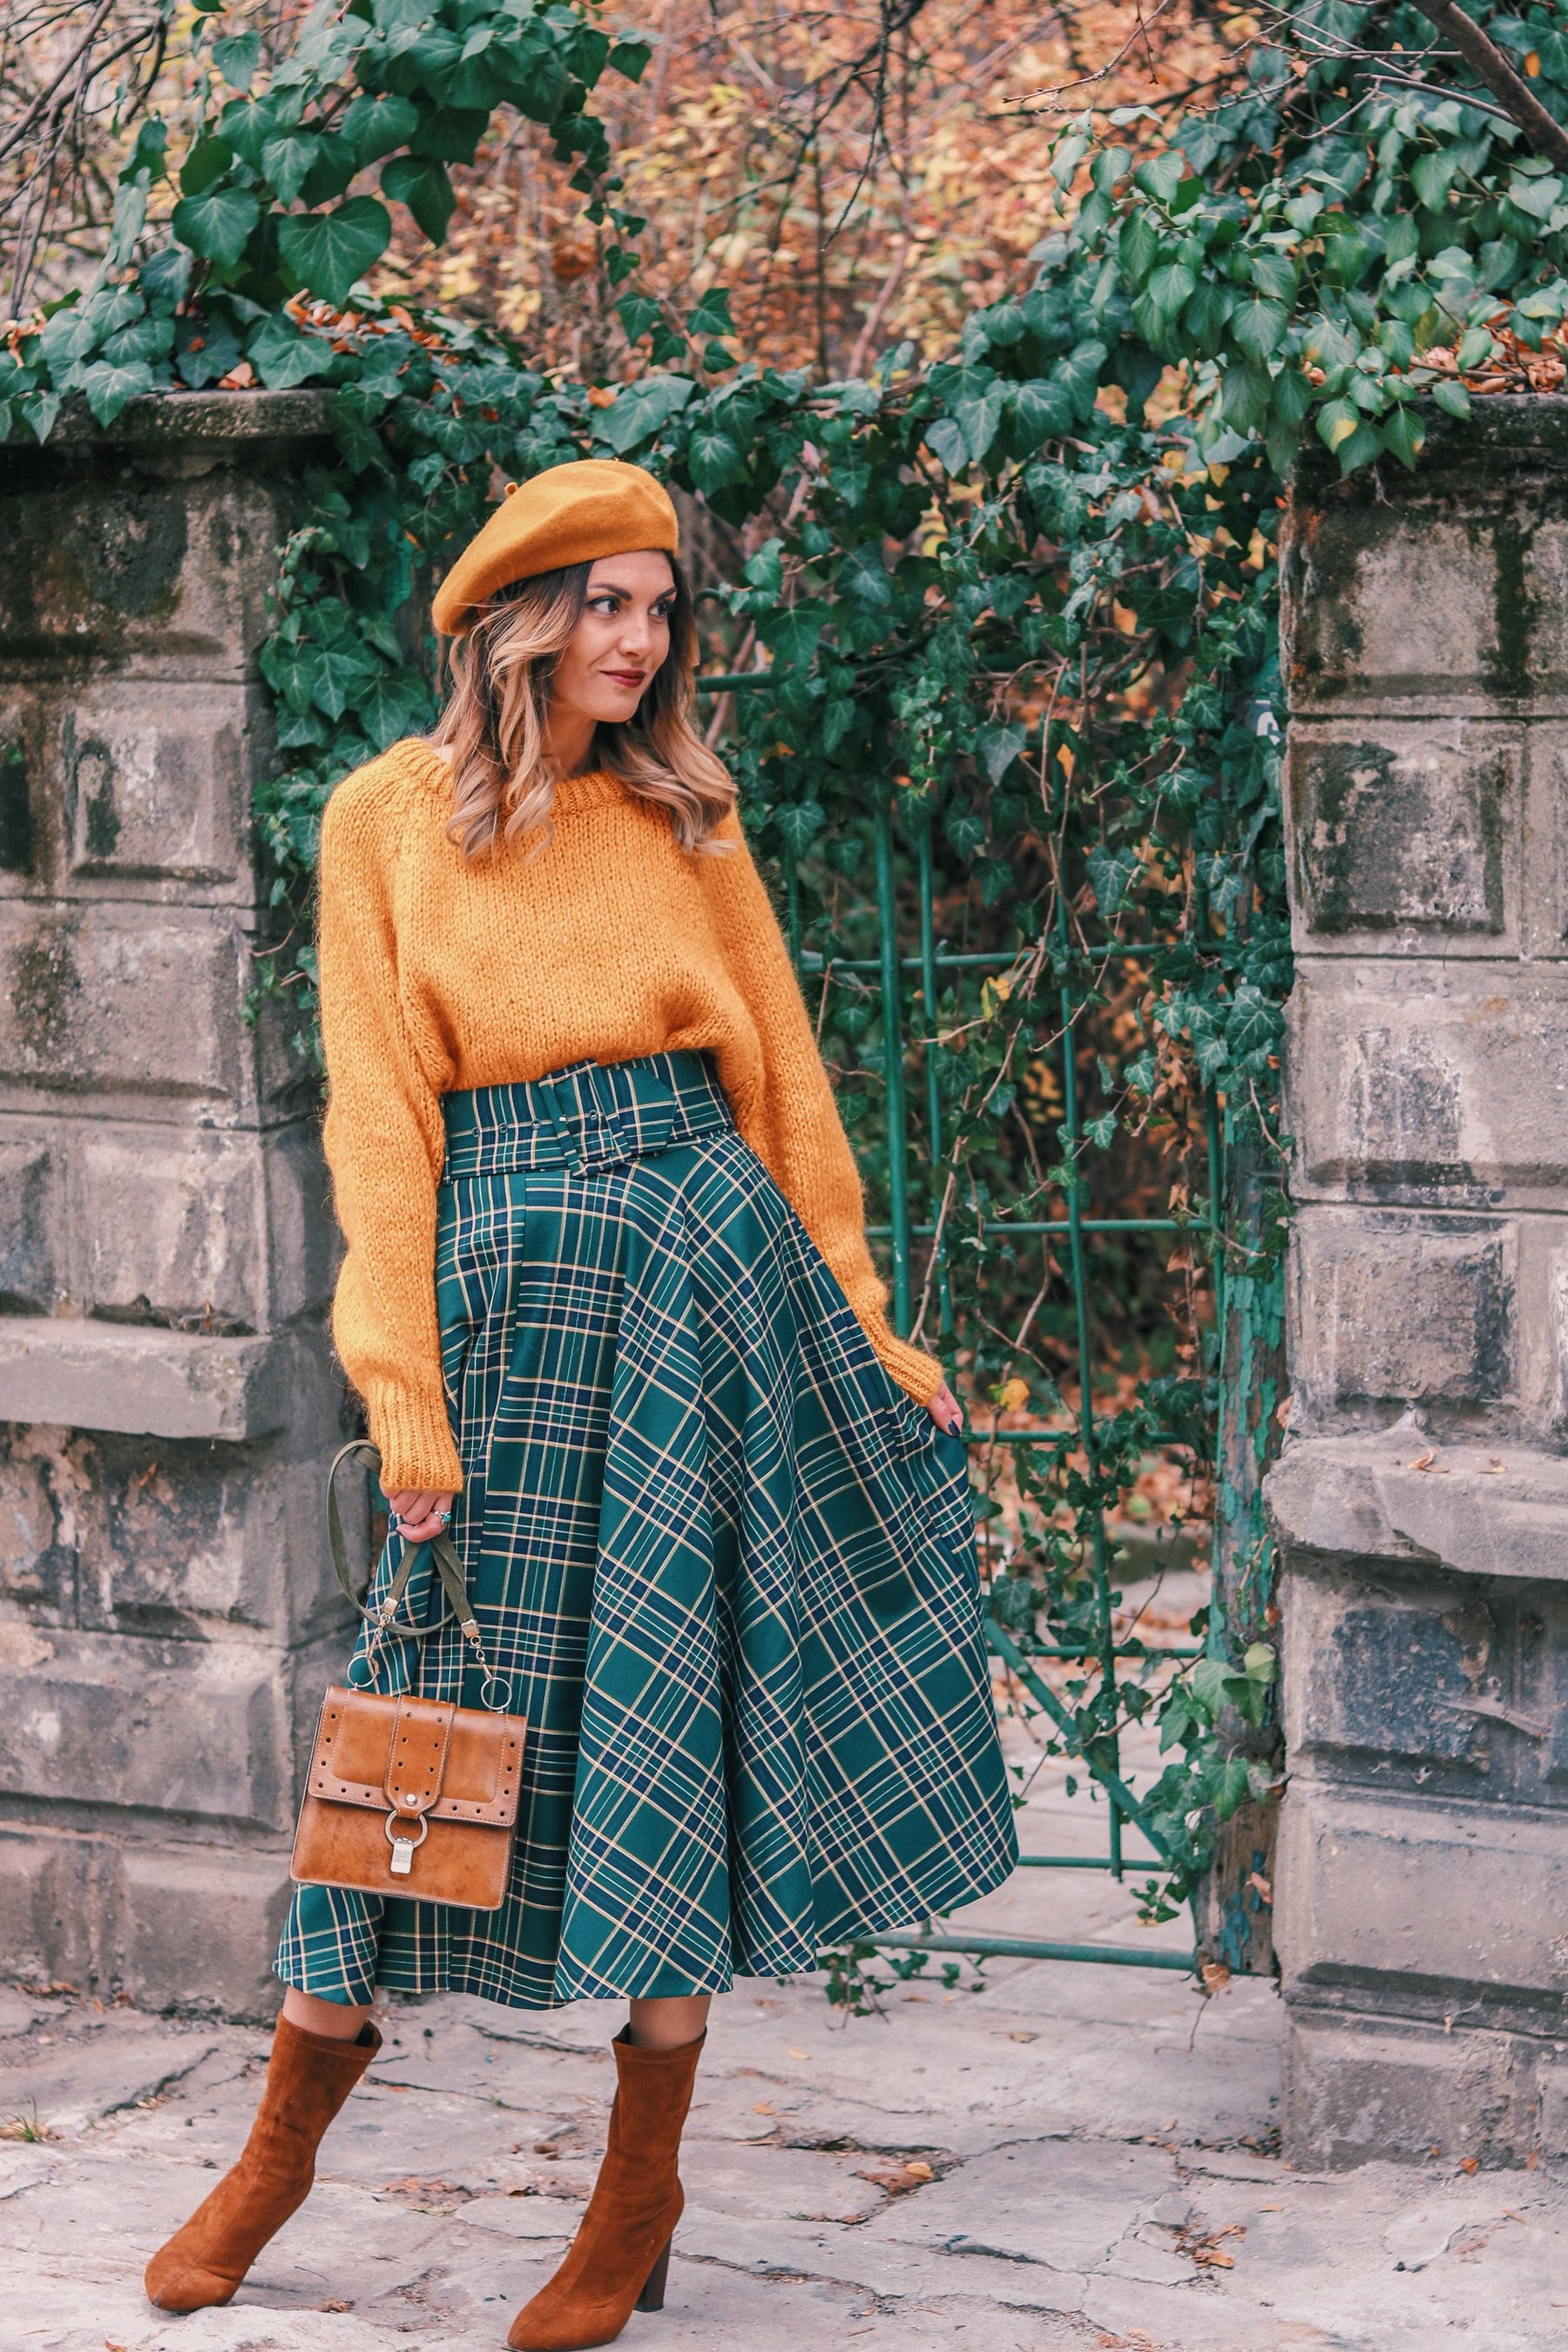 742c6890 Yellow Sweater Plaid Skirt Beret Outfit | Fashion inspiration in ...